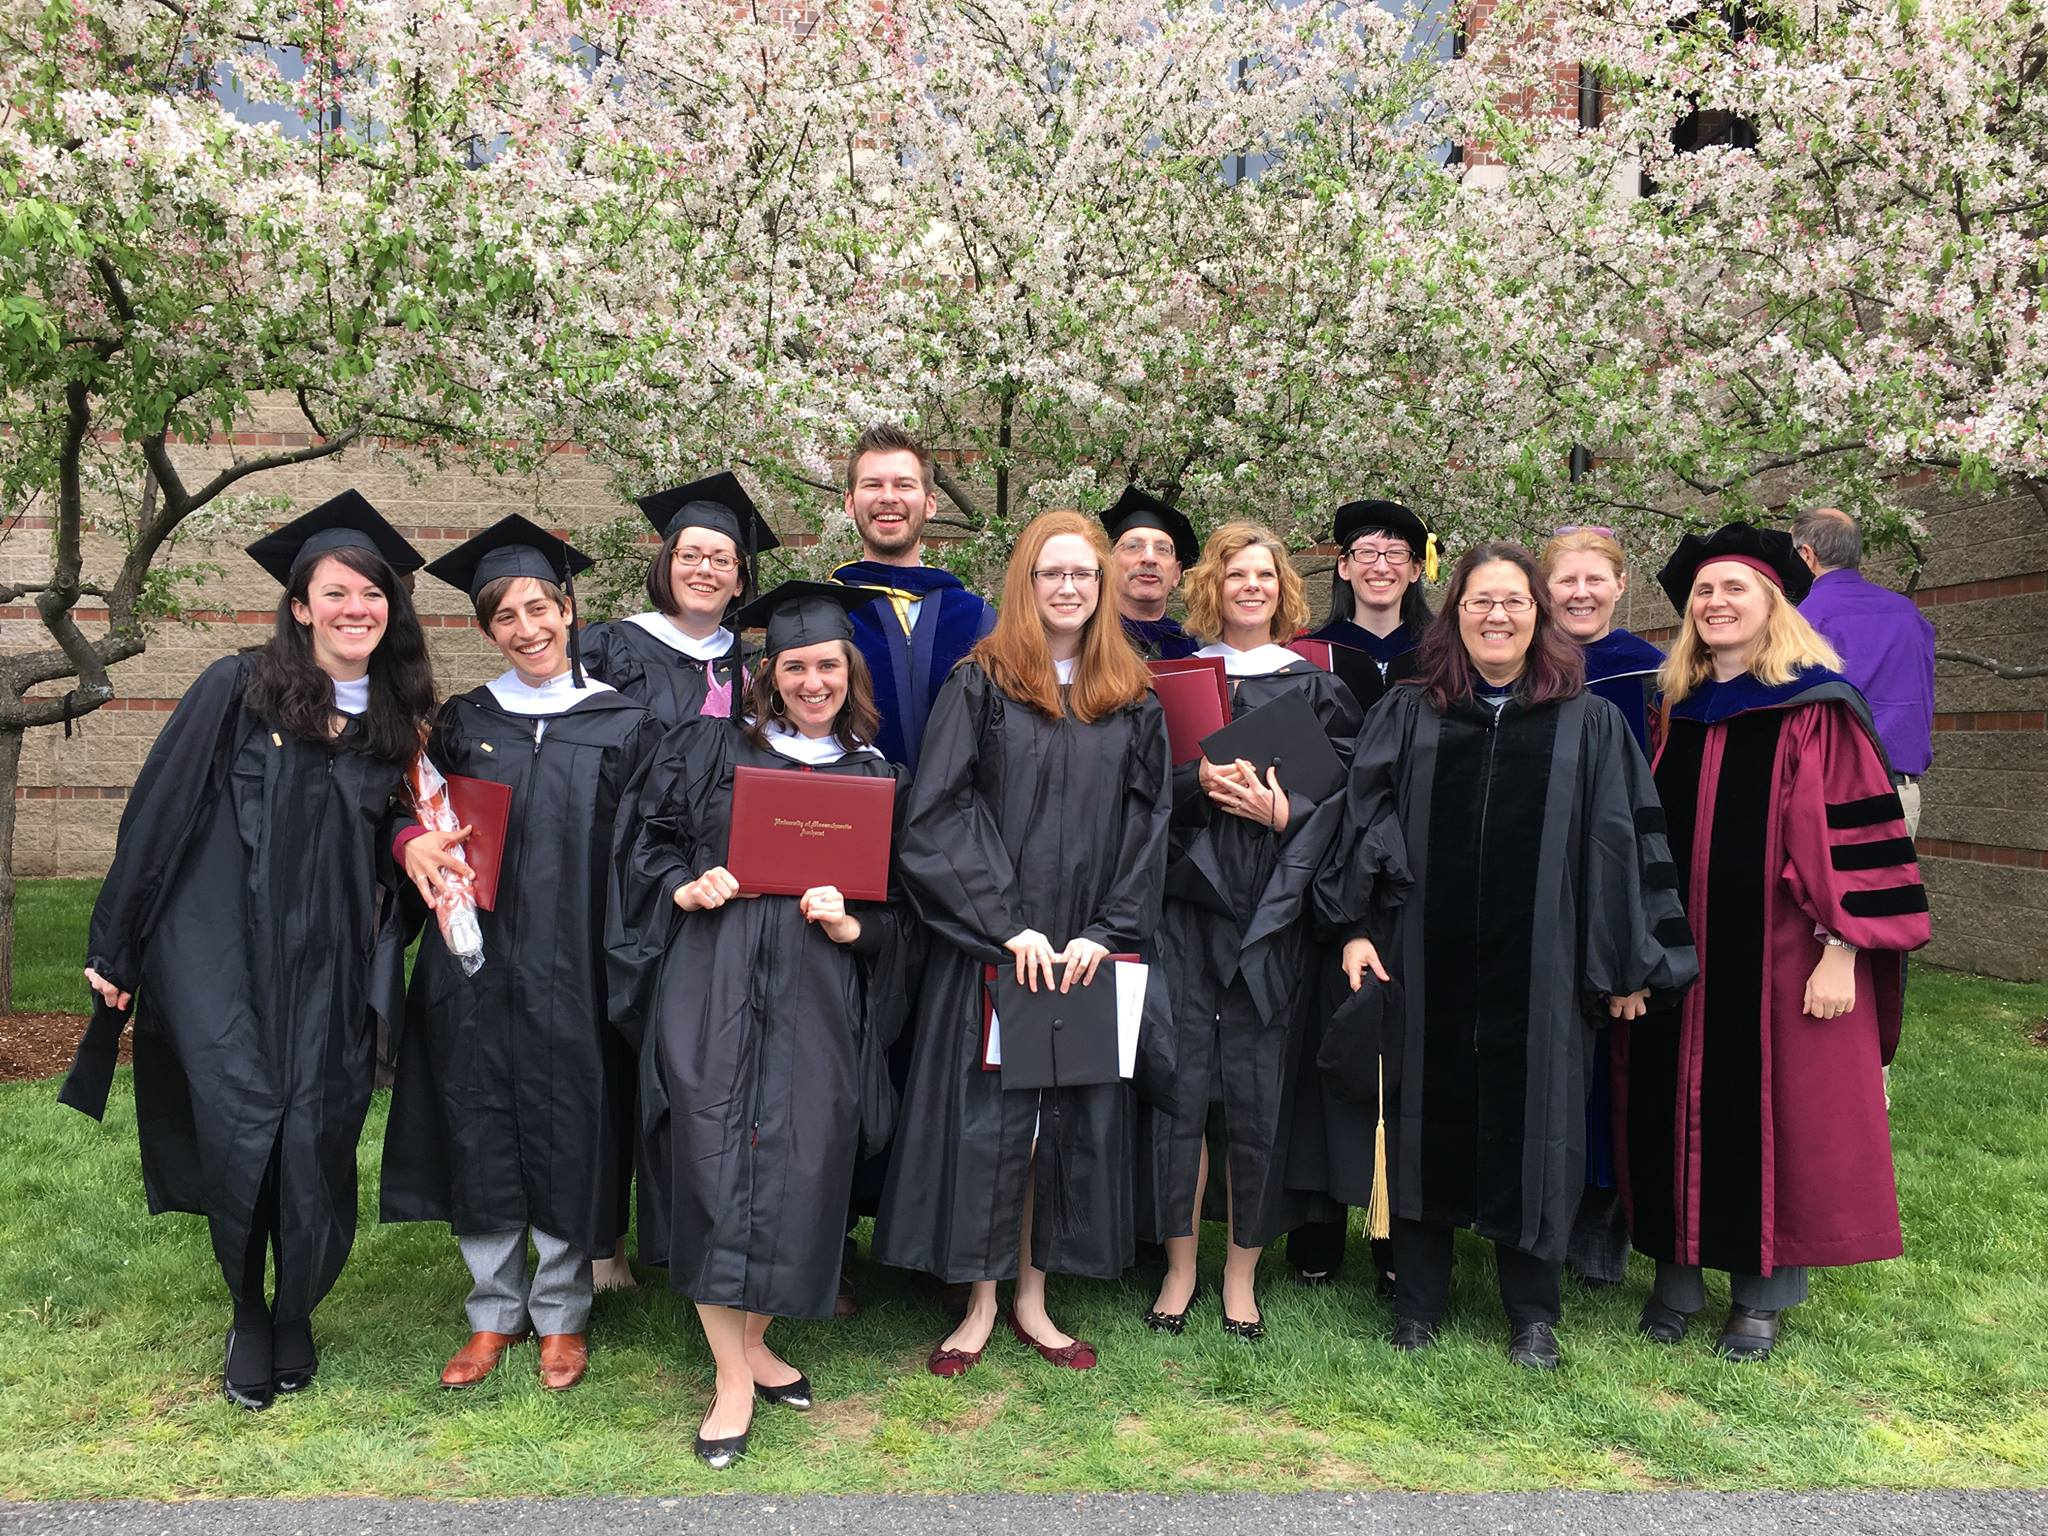 Group shot of 2016 public history graduates in academic regalia